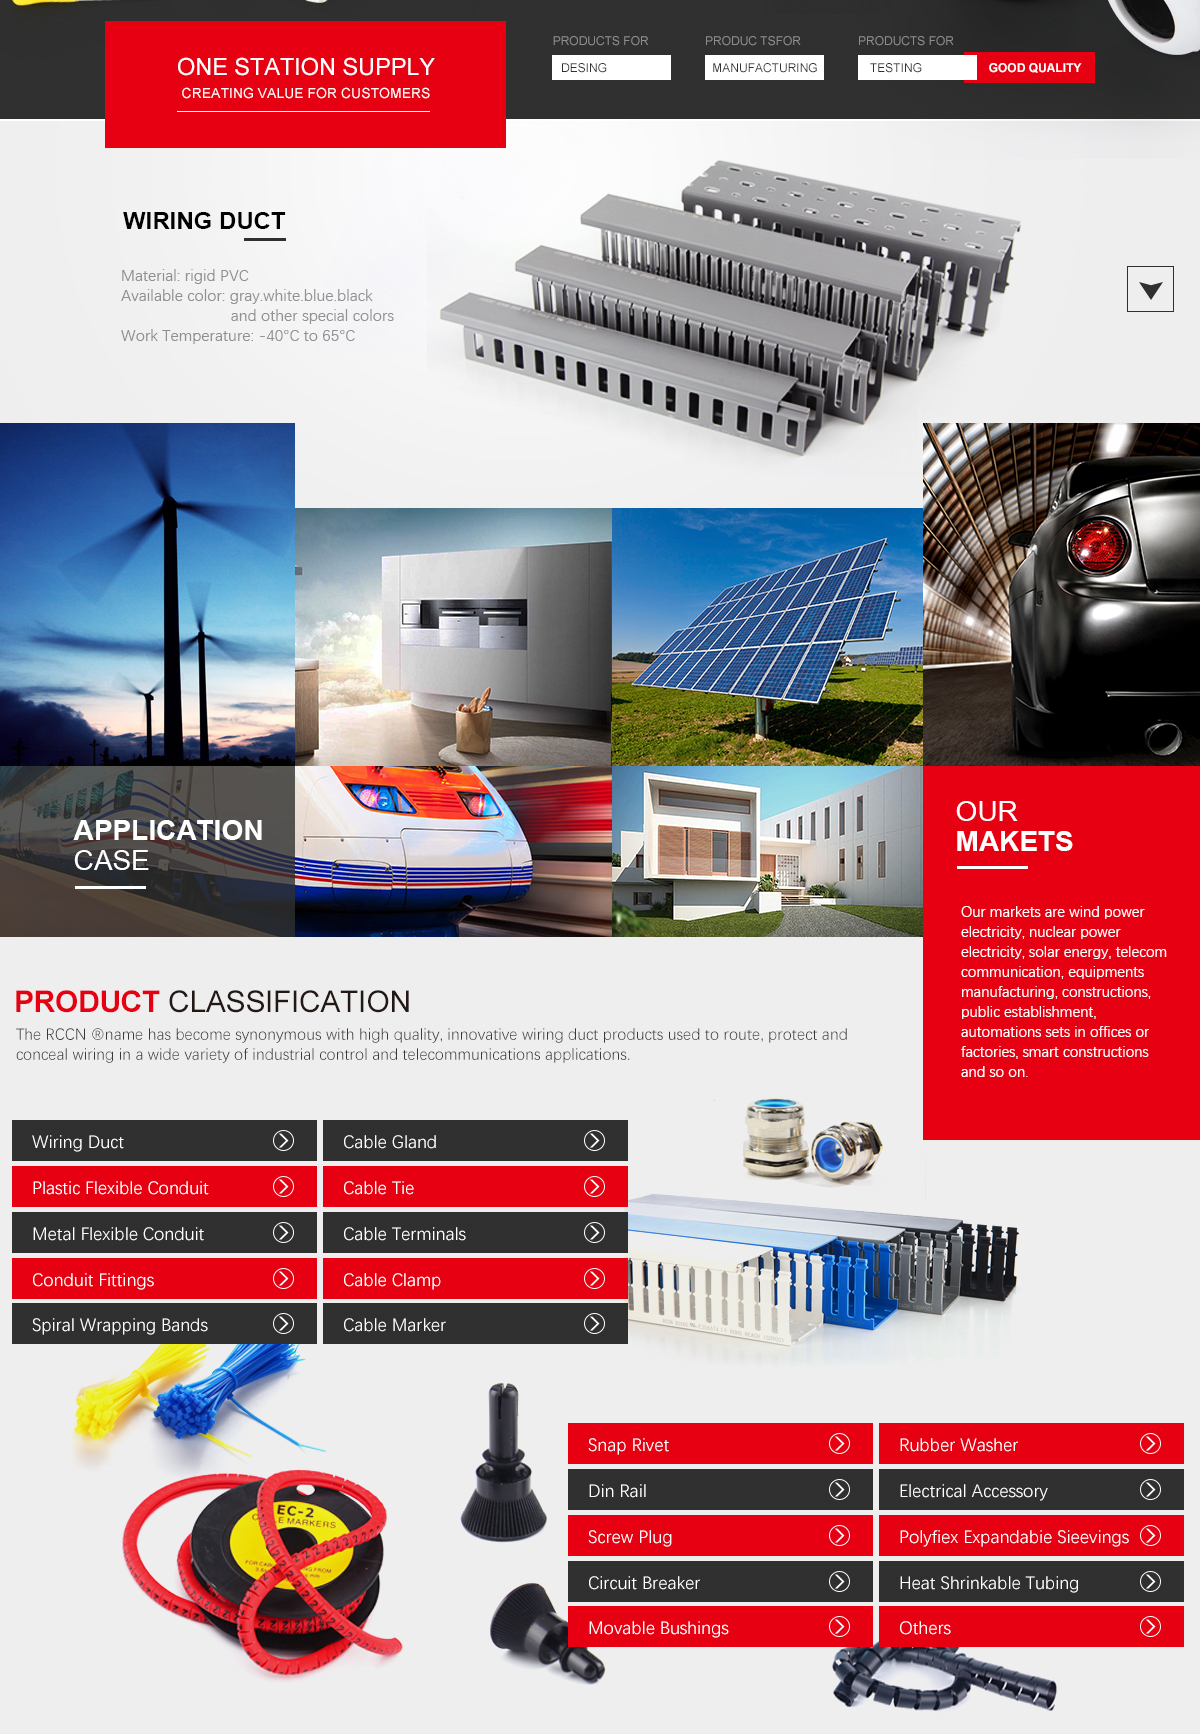 Outstanding Shanghai Richeng Electronics Co Ltd Wiring Duct Wiring Conduit Wiring Digital Resources Indicompassionincorg